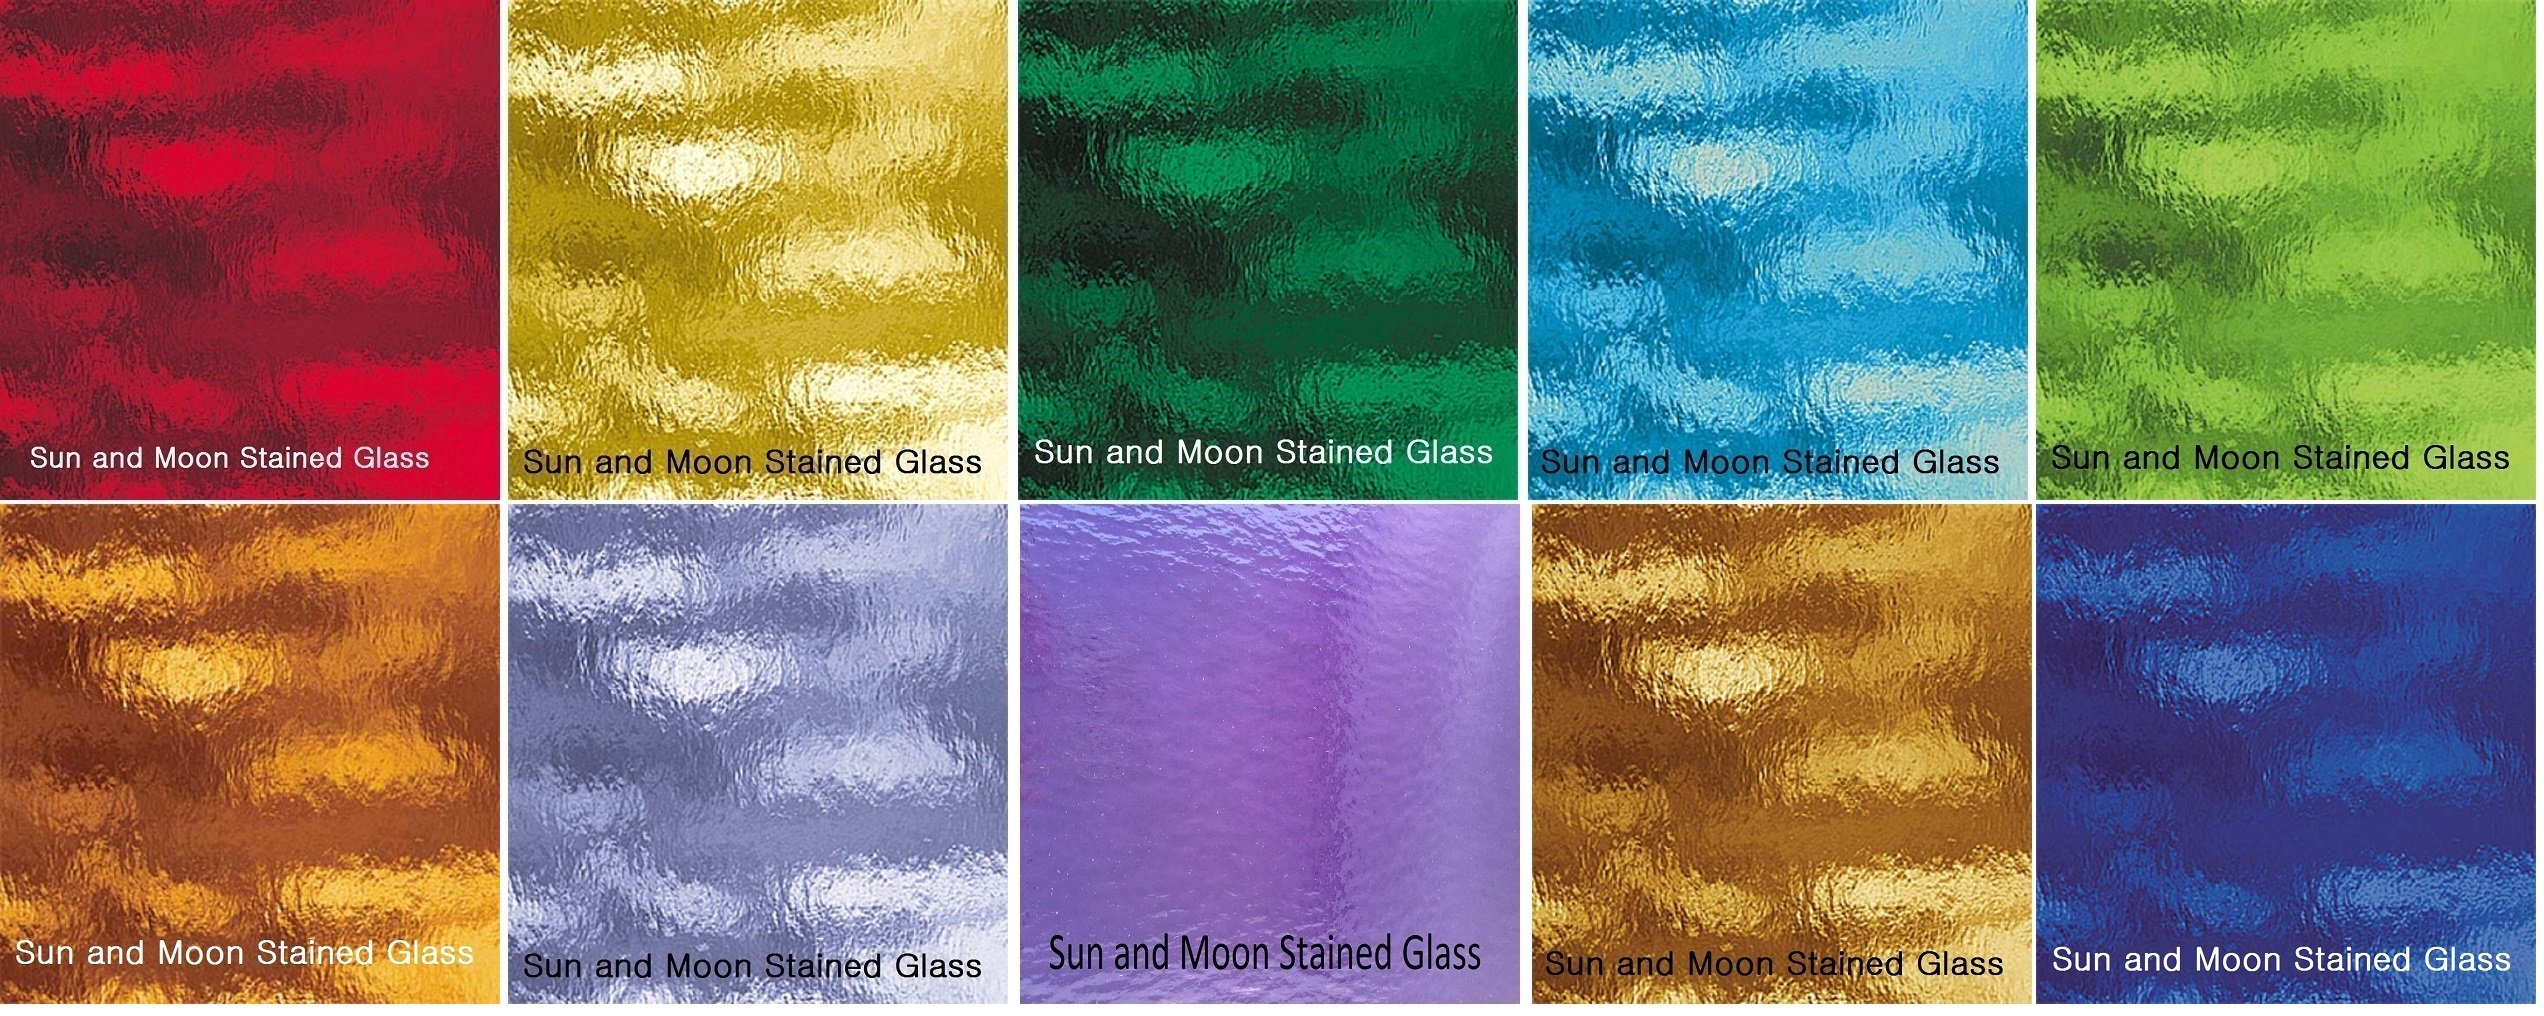 10 Sheets- Spectrum Stained Glass Pack - Rough Rolled Glass Collection (8''x5'') by Sun and Moon Stained Glass